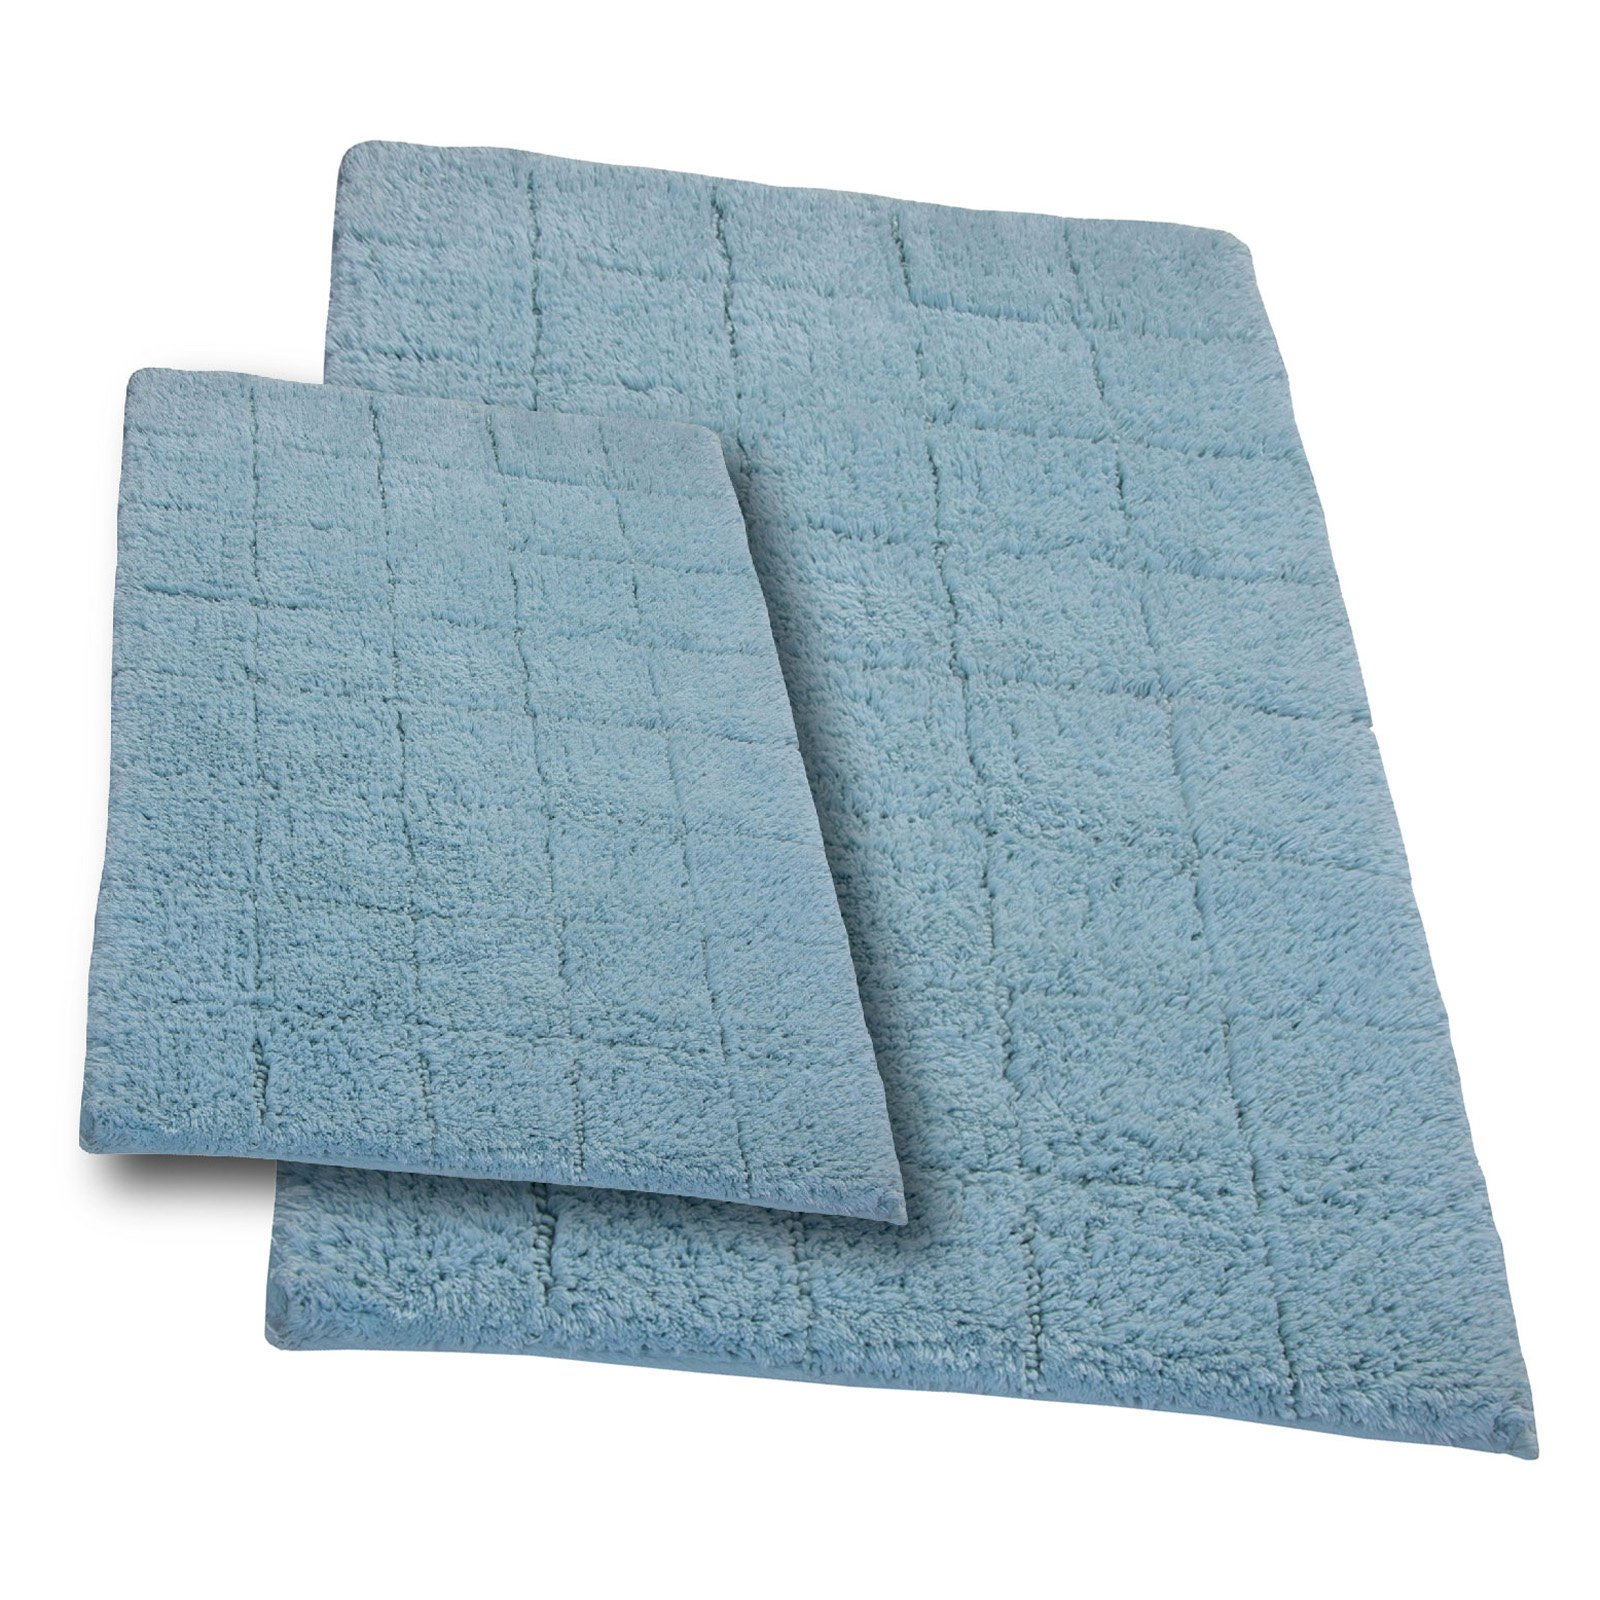 Elegance Collection Summer Tile Bath Rug - Set of 2